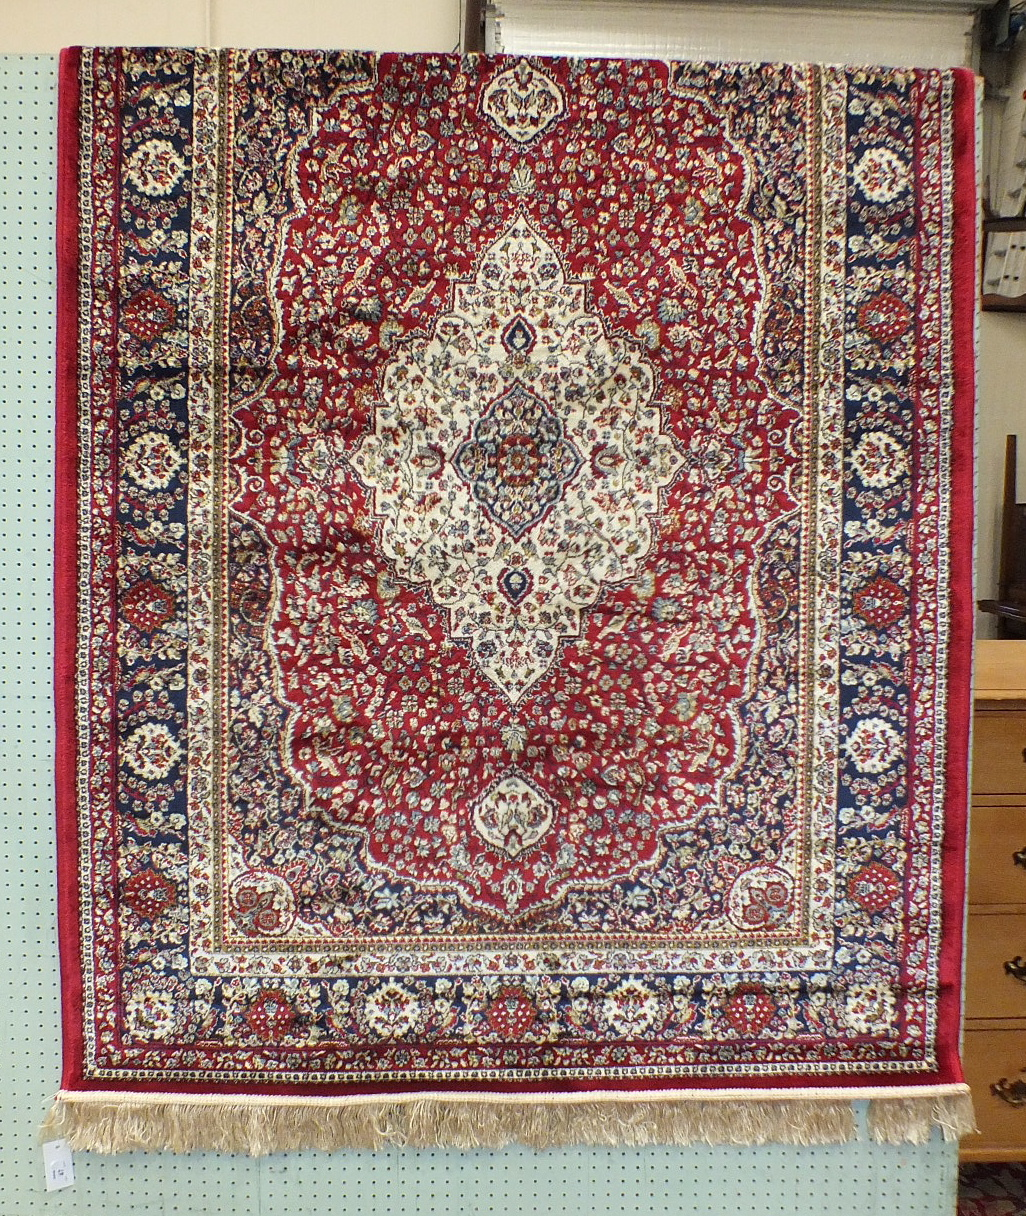 Lot 47 - A modern Kashmir rug with central ivory medallion on red ground, 115 x 82cm.